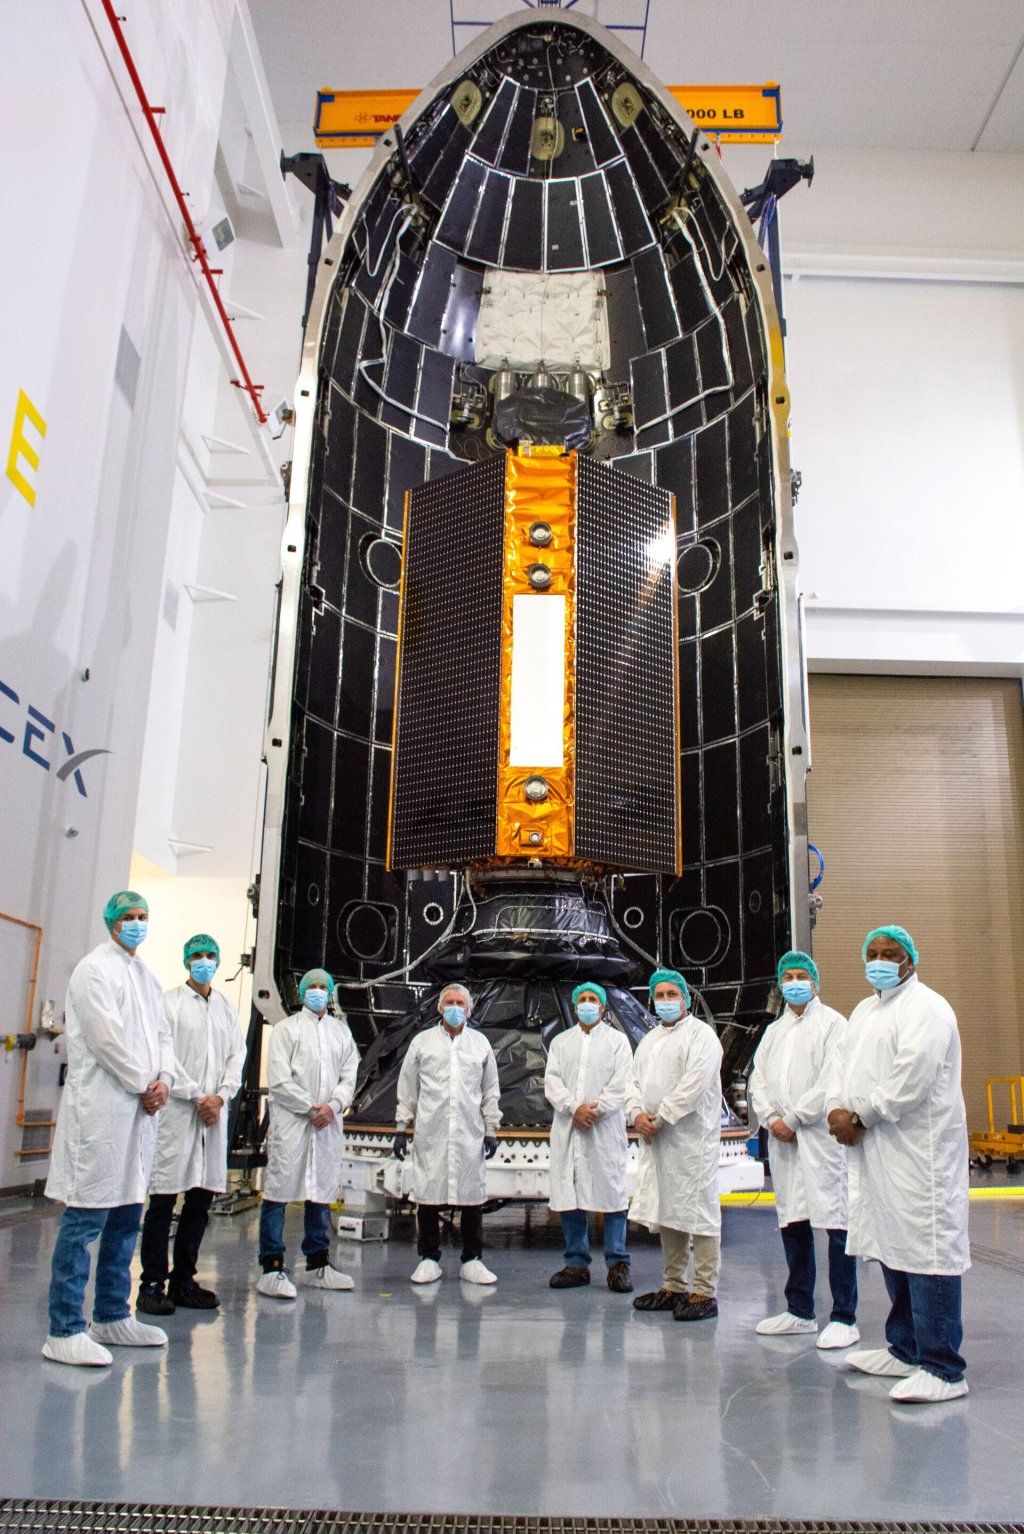 The launch campaign team in front of the satellite